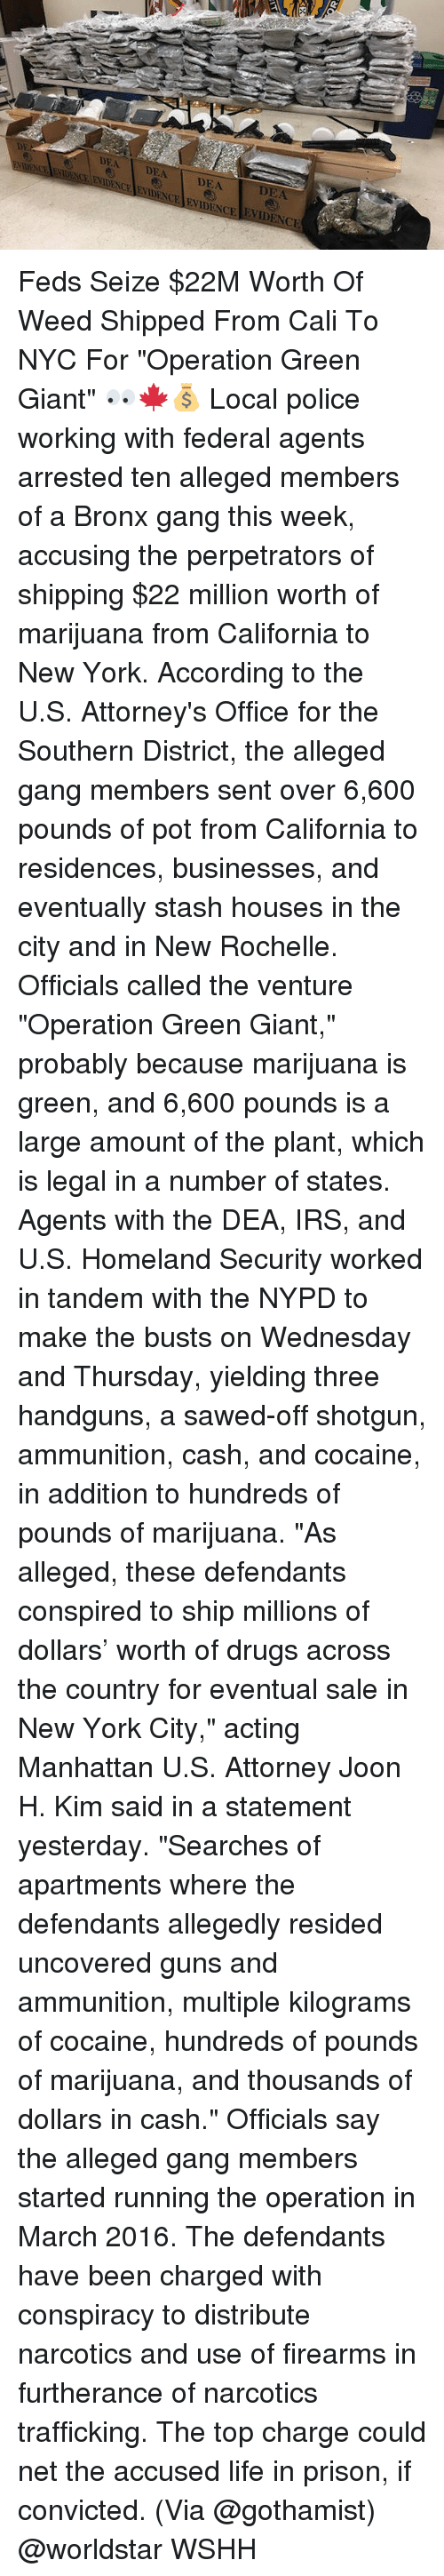 "stash: DEA DEA DEA  ENCE FVACEENDENCE ENIDENCE EVIDENCIE  2  DEA Feds Seize $22M Worth Of Weed Shipped From Cali To NYC For ""Operation Green Giant"" 👀🍁💰 Local police working with federal agents arrested ten alleged members of a Bronx gang this week, accusing the perpetrators of shipping $22 million worth of marijuana from California to New York. According to the U.S. Attorney's Office for the Southern District, the alleged gang members sent over 6,600 pounds of pot from California to residences, businesses, and eventually stash houses in the city and in New Rochelle. Officials called the venture ""Operation Green Giant,"" probably because marijuana is green, and 6,600 pounds is a large amount of the plant, which is legal in a number of states. Agents with the DEA, IRS, and U.S. Homeland Security worked in tandem with the NYPD to make the busts on Wednesday and Thursday, yielding three handguns, a sawed-off shotgun, ammunition, cash, and cocaine, in addition to hundreds of pounds of marijuana. ""As alleged, these defendants conspired to ship millions of dollars' worth of drugs across the country for eventual sale in New York City,"" acting Manhattan U.S. Attorney Joon H. Kim said in a statement yesterday. ""Searches of apartments where the defendants allegedly resided uncovered guns and ammunition, multiple kilograms of cocaine, hundreds of pounds of marijuana, and thousands of dollars in cash."" Officials say the alleged gang members started running the operation in March 2016. The defendants have been charged with conspiracy to distribute narcotics and use of firearms in furtherance of narcotics trafficking. The top charge could net the accused life in prison, if convicted. (Via @gothamist) @worldstar WSHH"